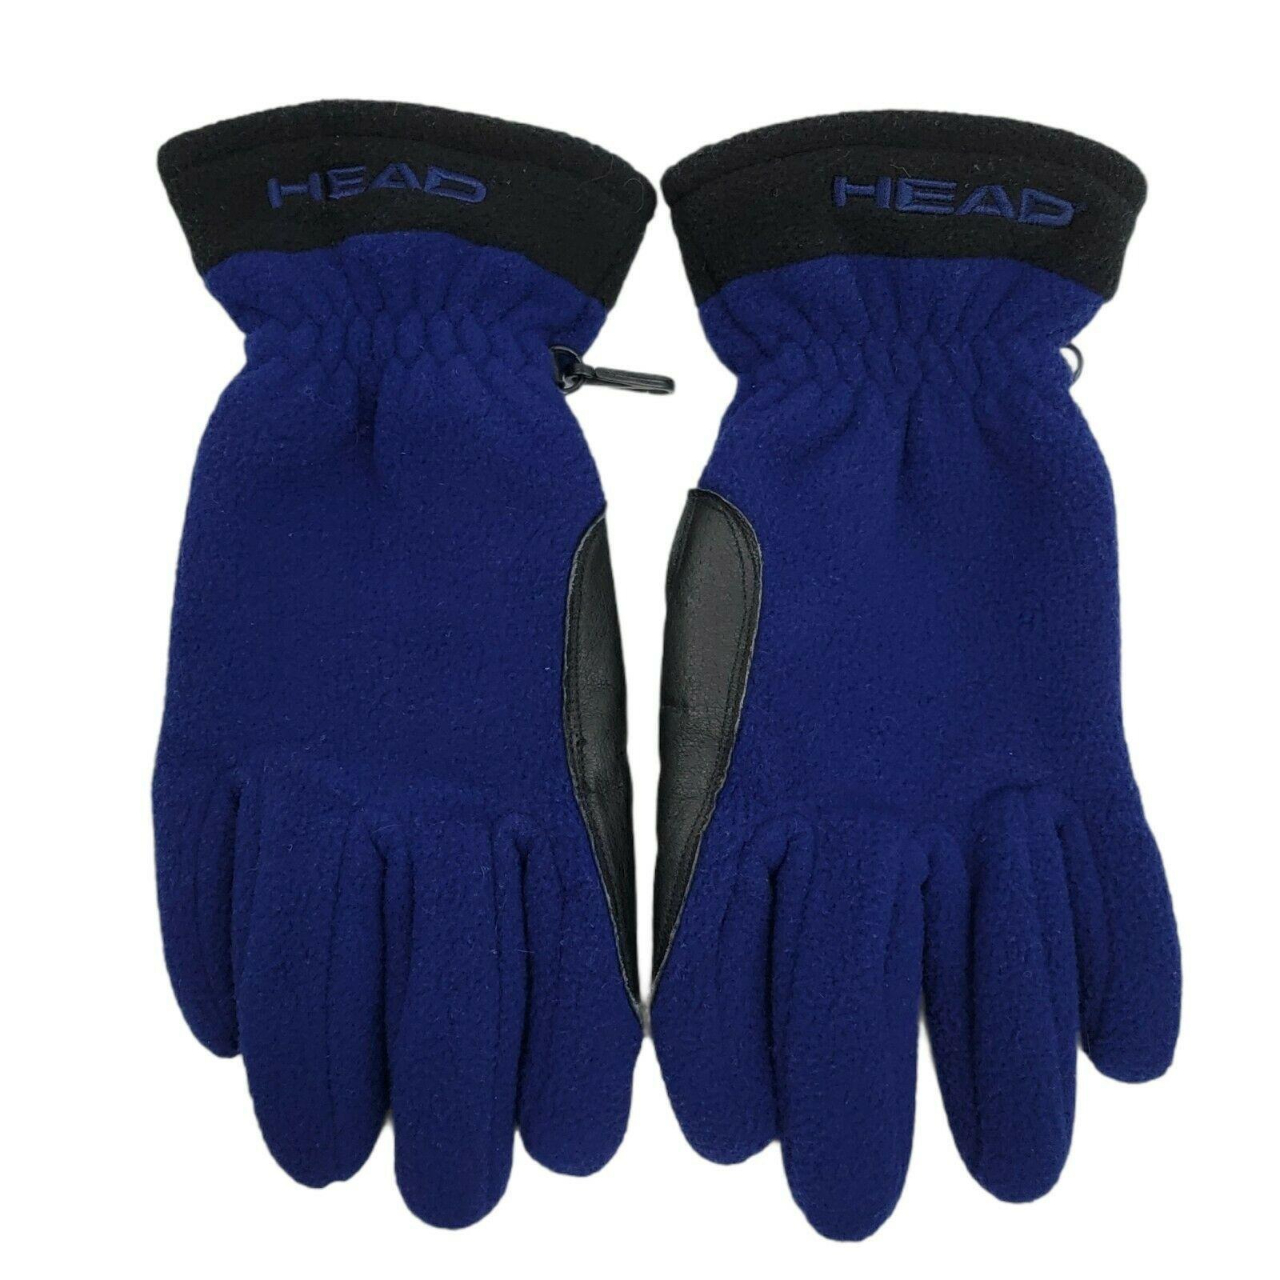 Product Image 1 - Brand: HEAD Item: Fleece gloves with